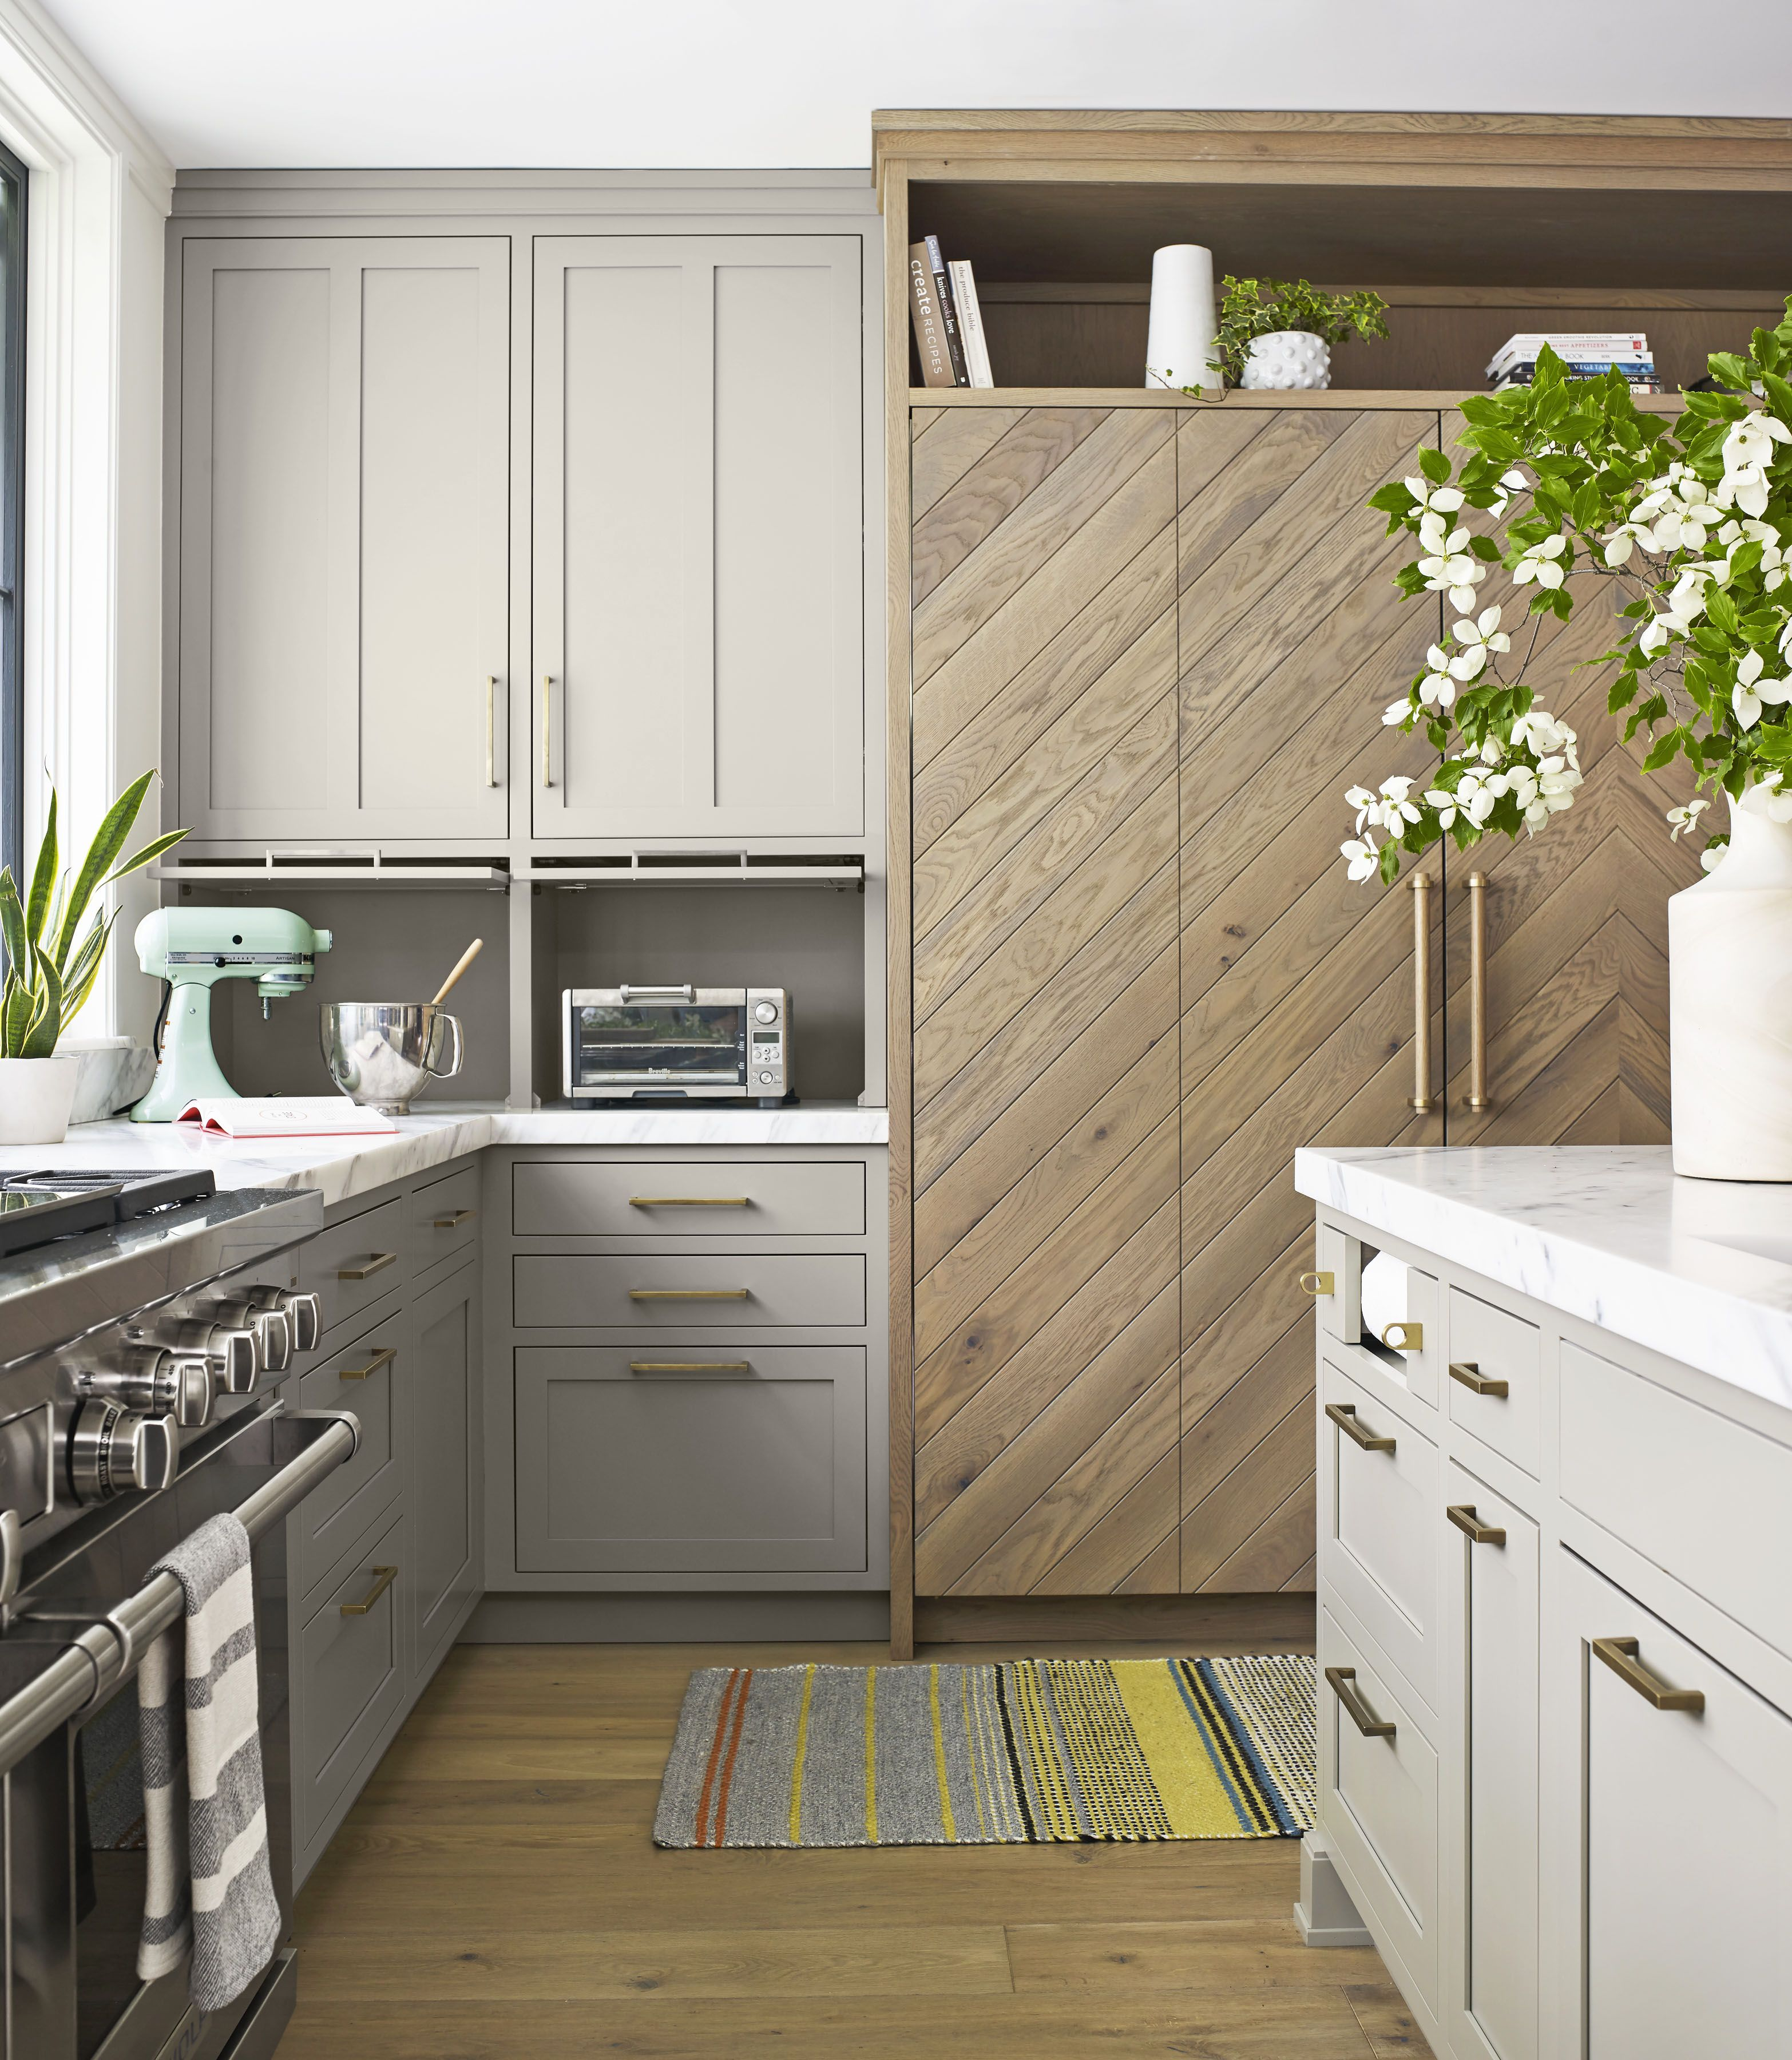 Sarah Robertson Is House Beautiful S Nov 2019 Kitchen Of The Month